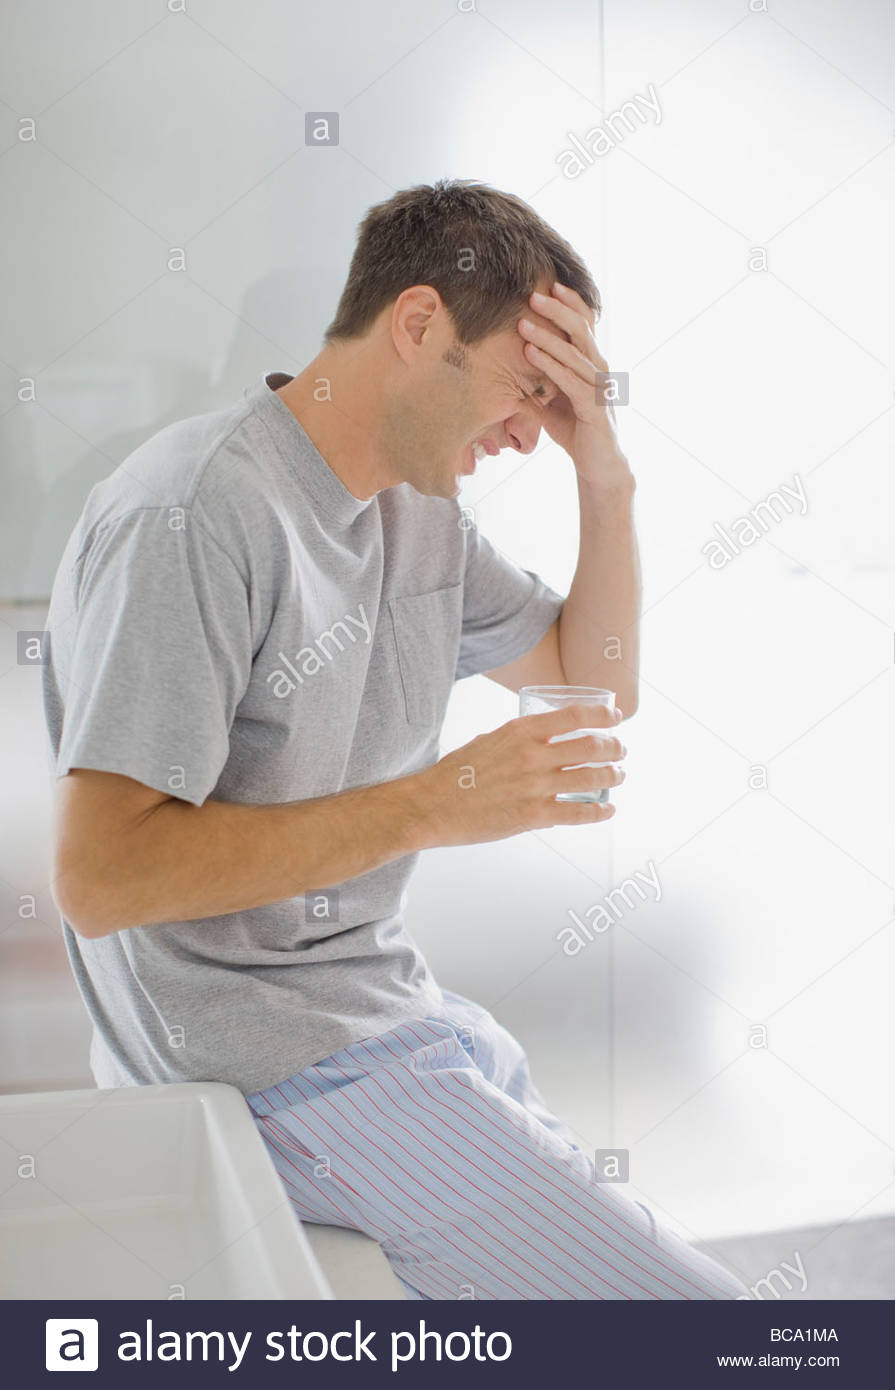 Man with headache drinking water - Stock Image